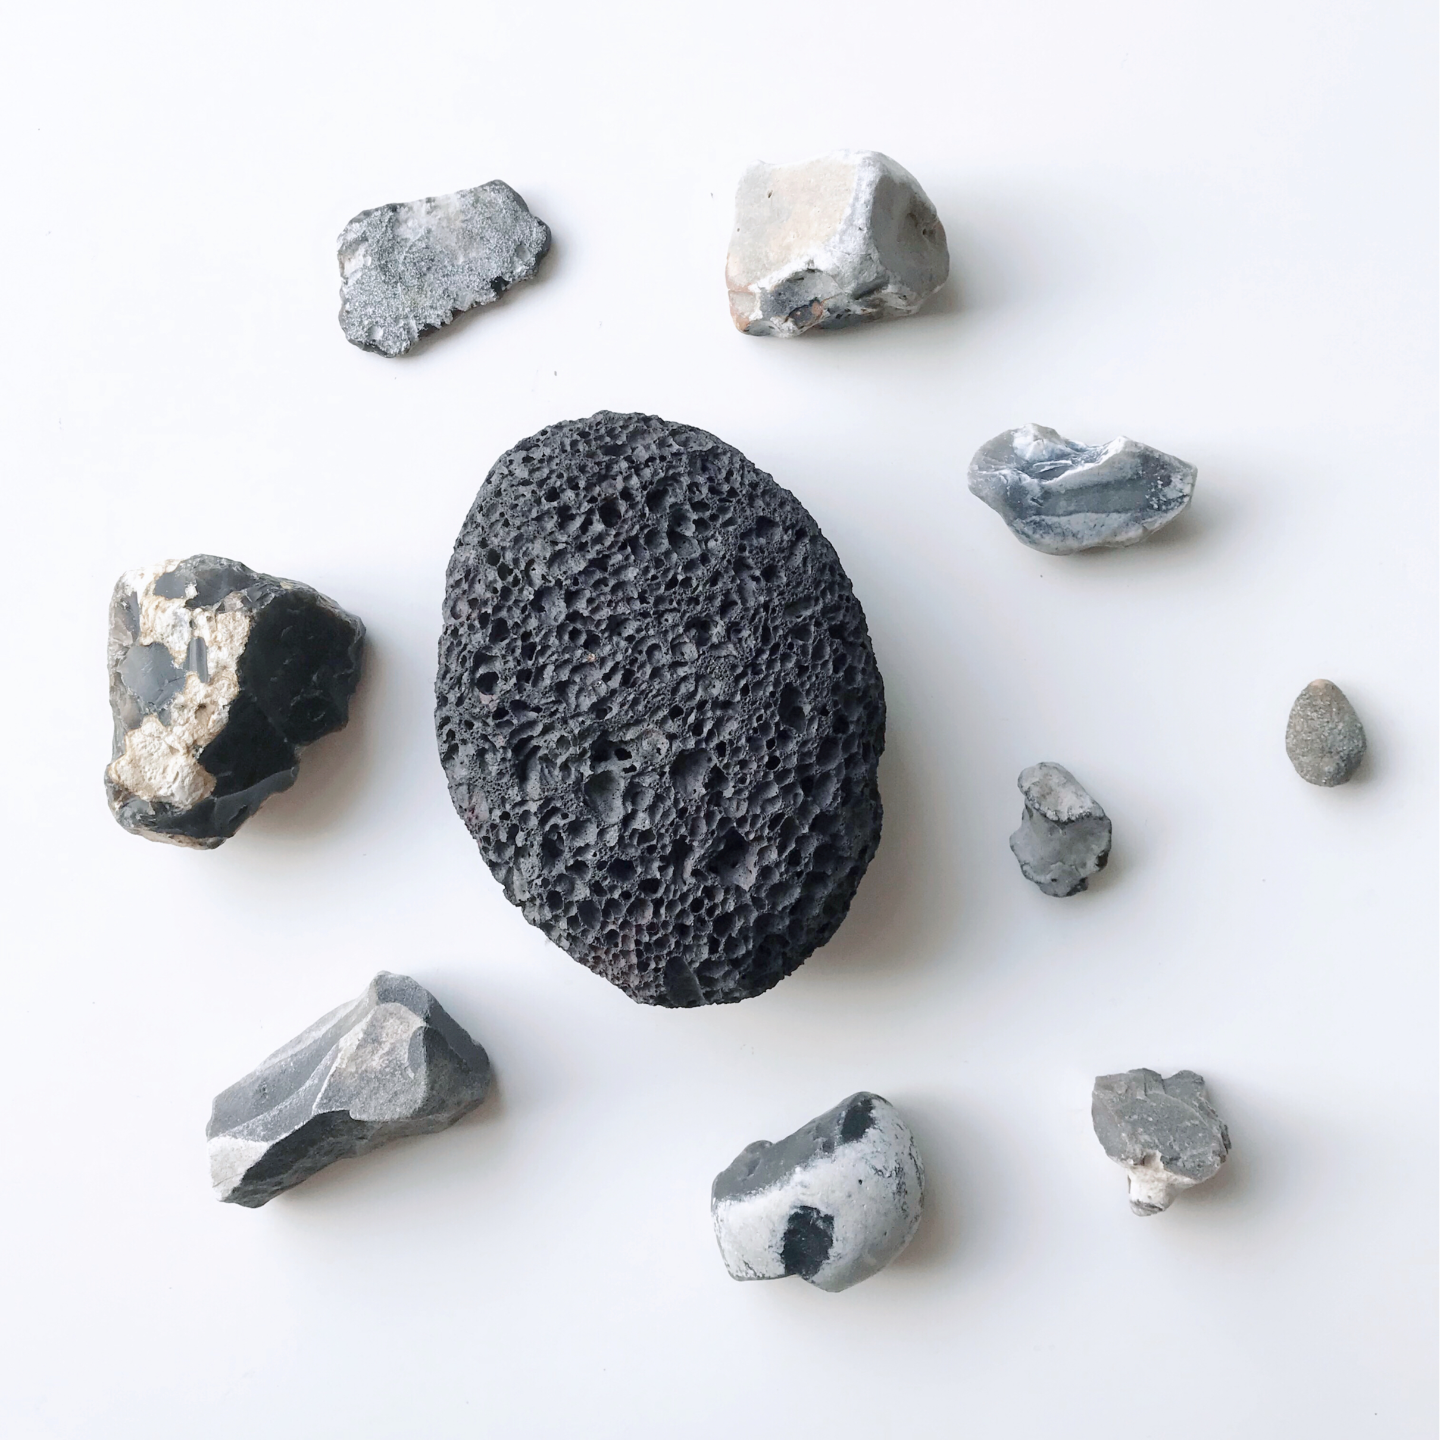 An exfoliating dark grey stone.